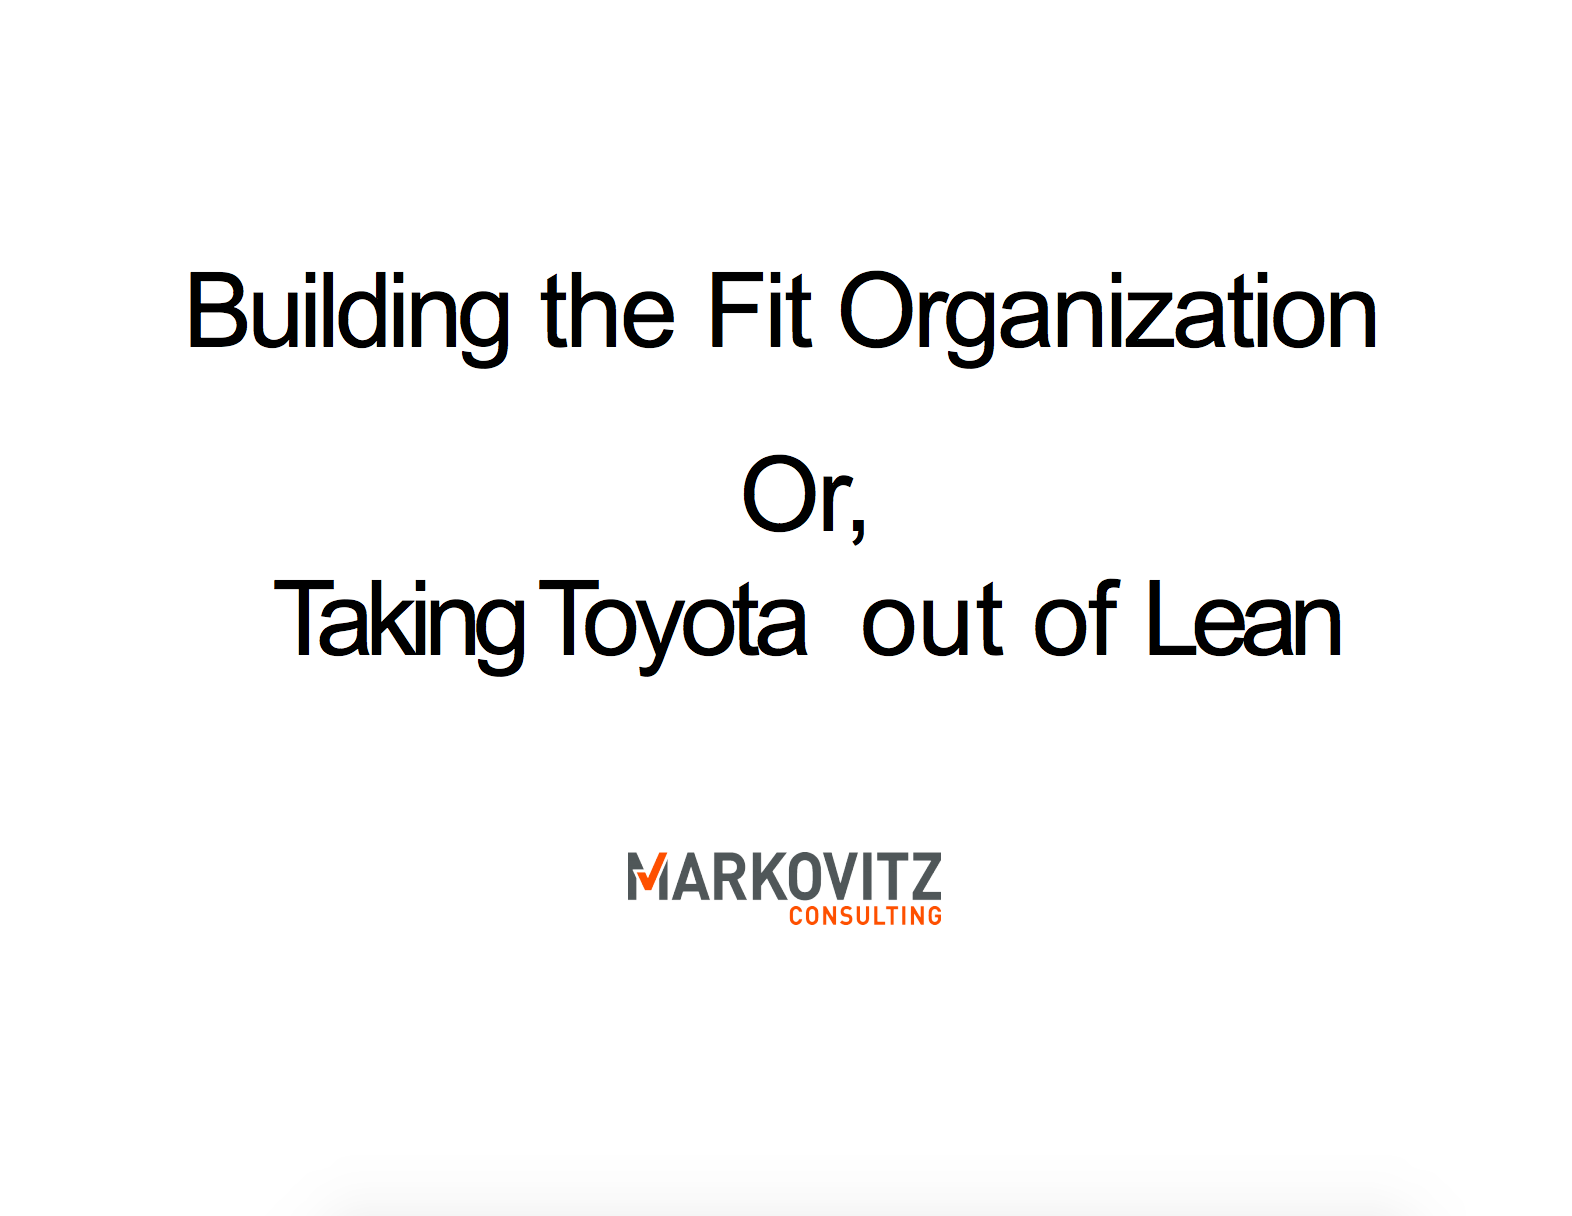 Building the Fit Organization, or; Taking the Toyota Out of Lean